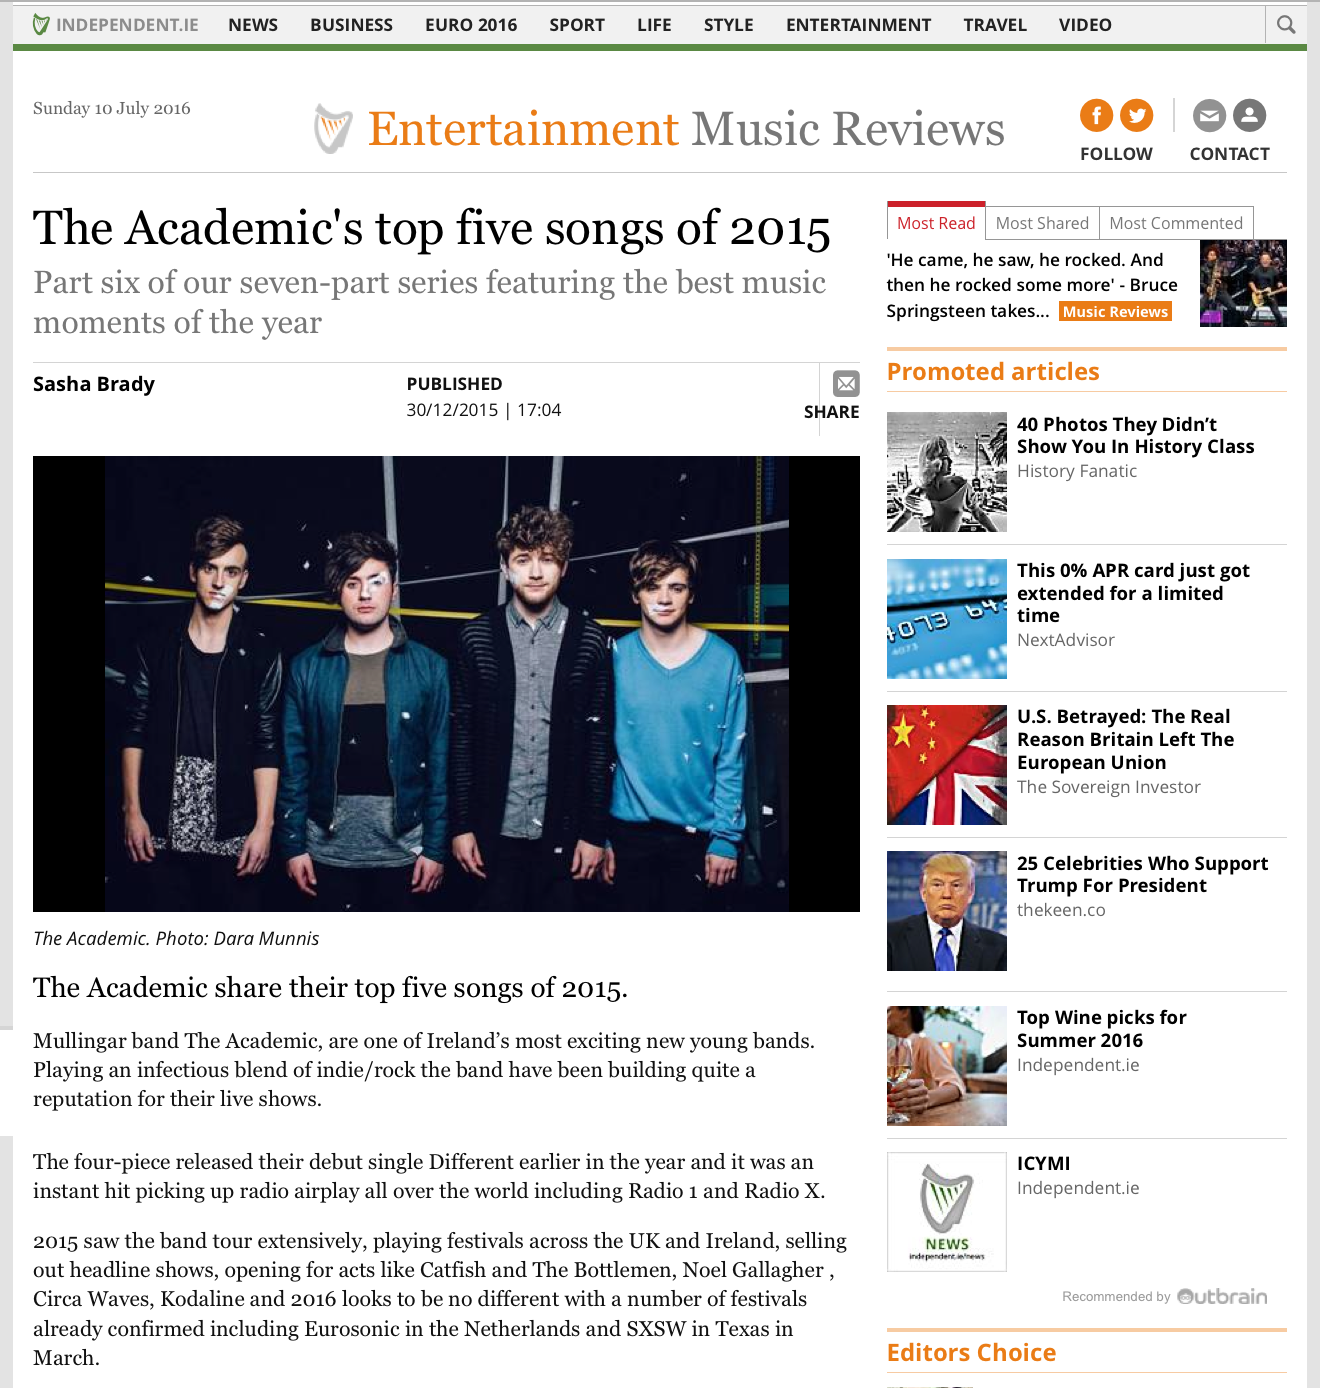 Independent.ie 10th July 2016